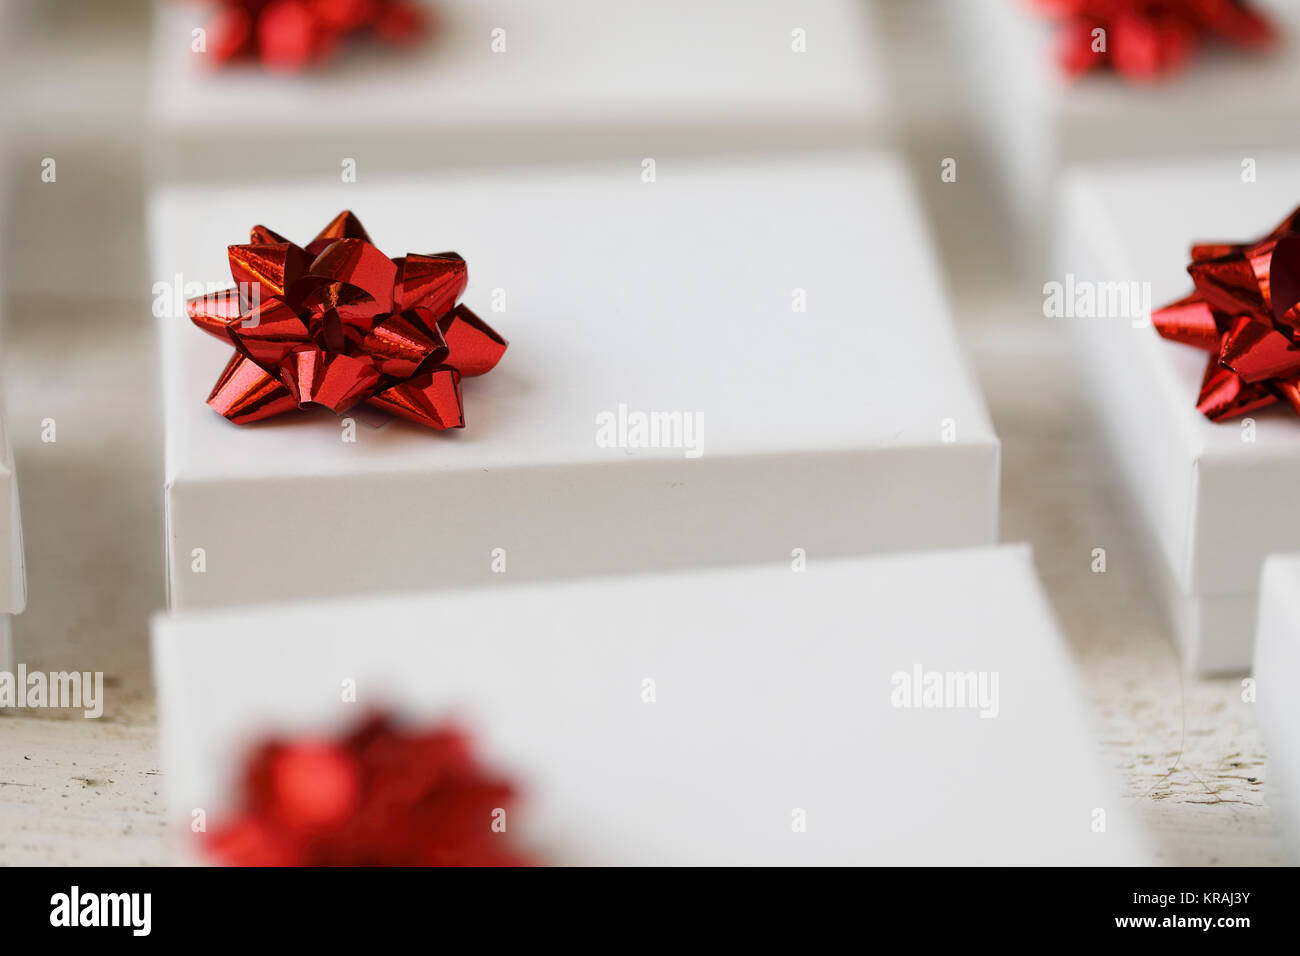 Gift Boxes with Red Bows - Stock Image